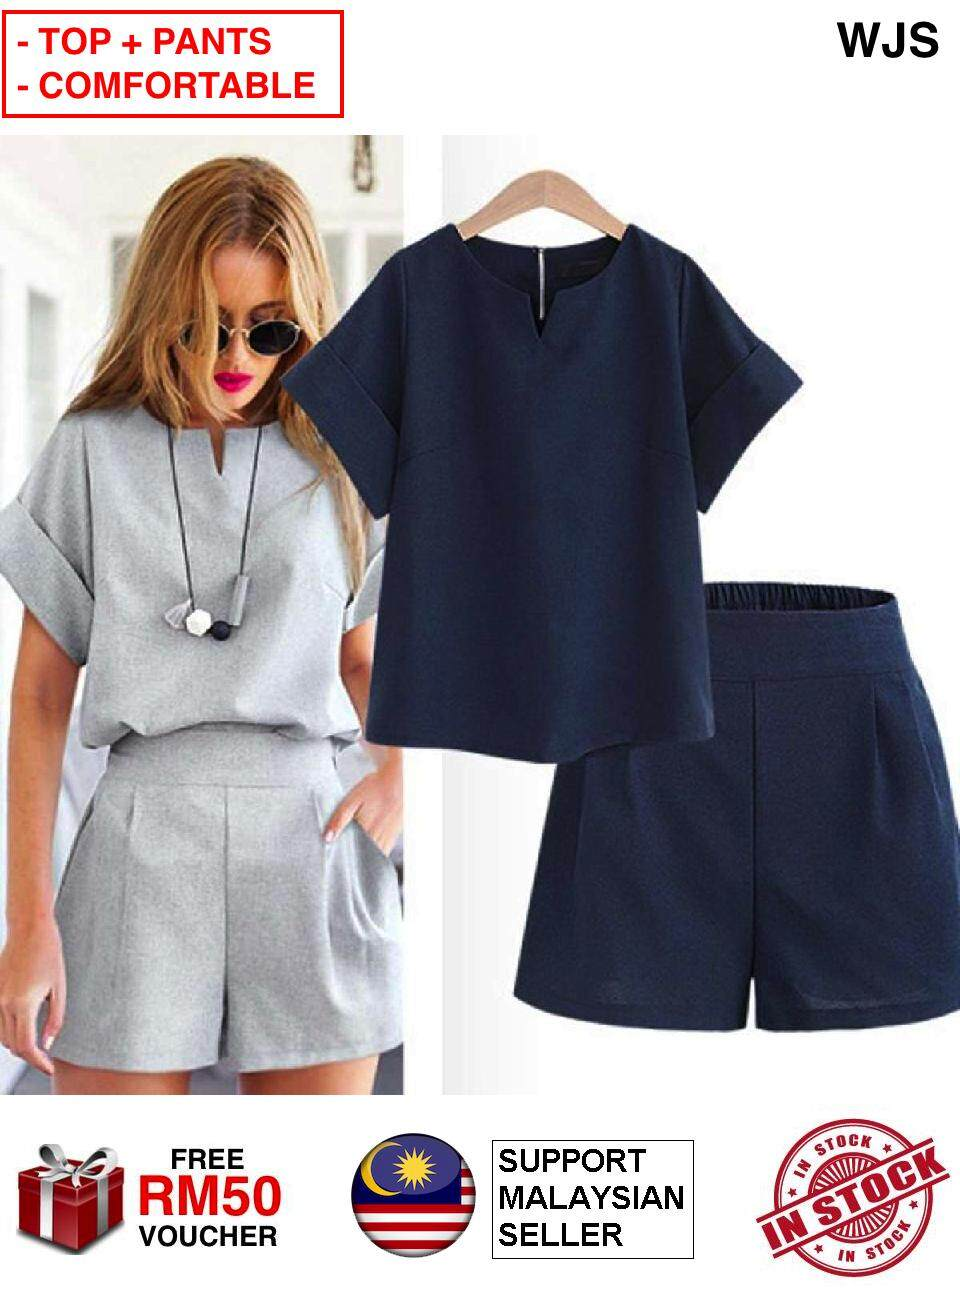 (TOP + PANTS) WJS 2pc 2 pcs Jumpsuit Trendy Casual Plus Size Summer Wear New Style Wind Dress Short-Sleeved Top with Short Pant Two-Piece Set Jump Suit Blouse with Pants BLUE GREY Size XL - 5XL [FREE RM 50 VOUCHER]